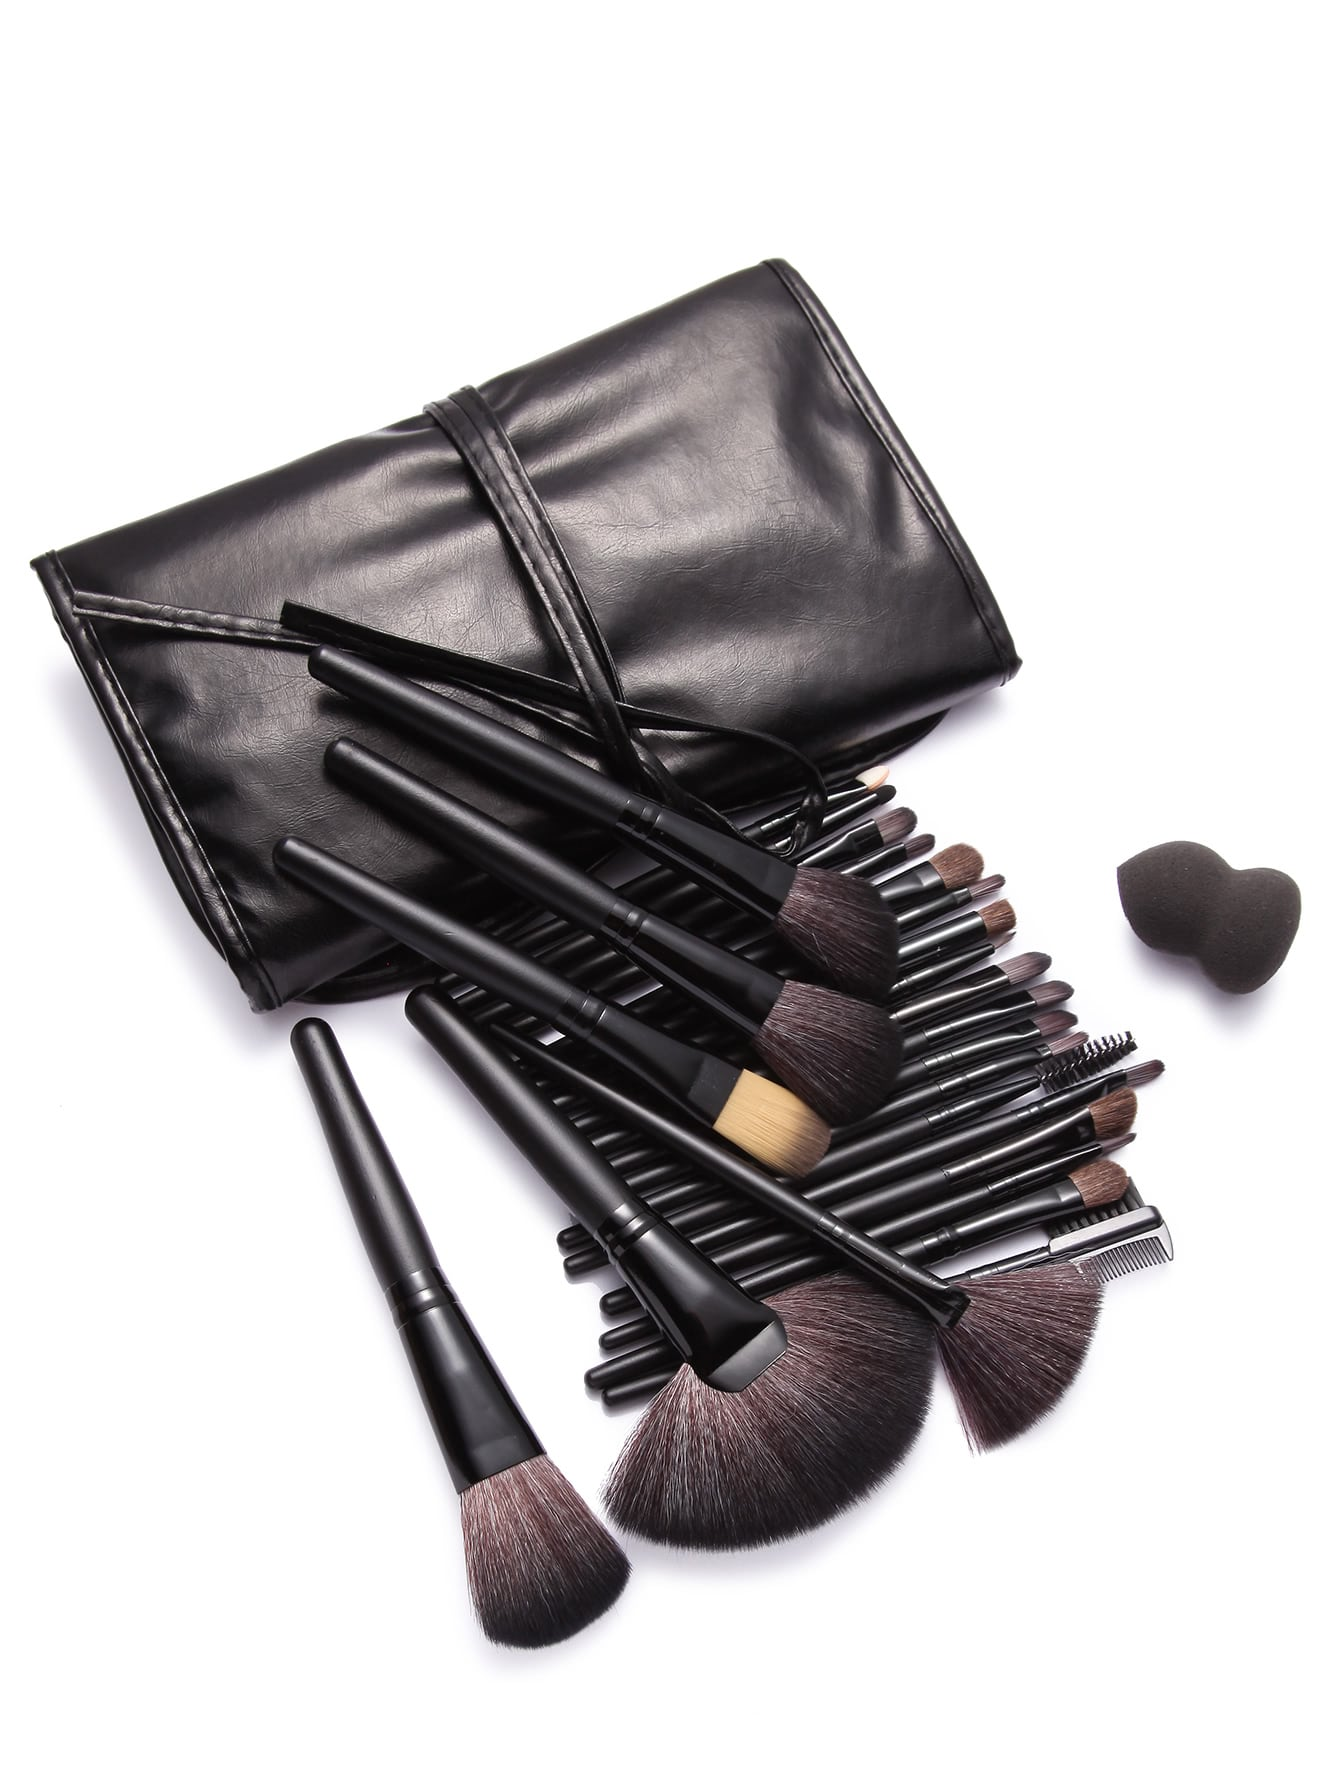 Makeup Brushes Sponge Collection: 24Pcs Black Professional Makeup Brush Set With Leather Bag